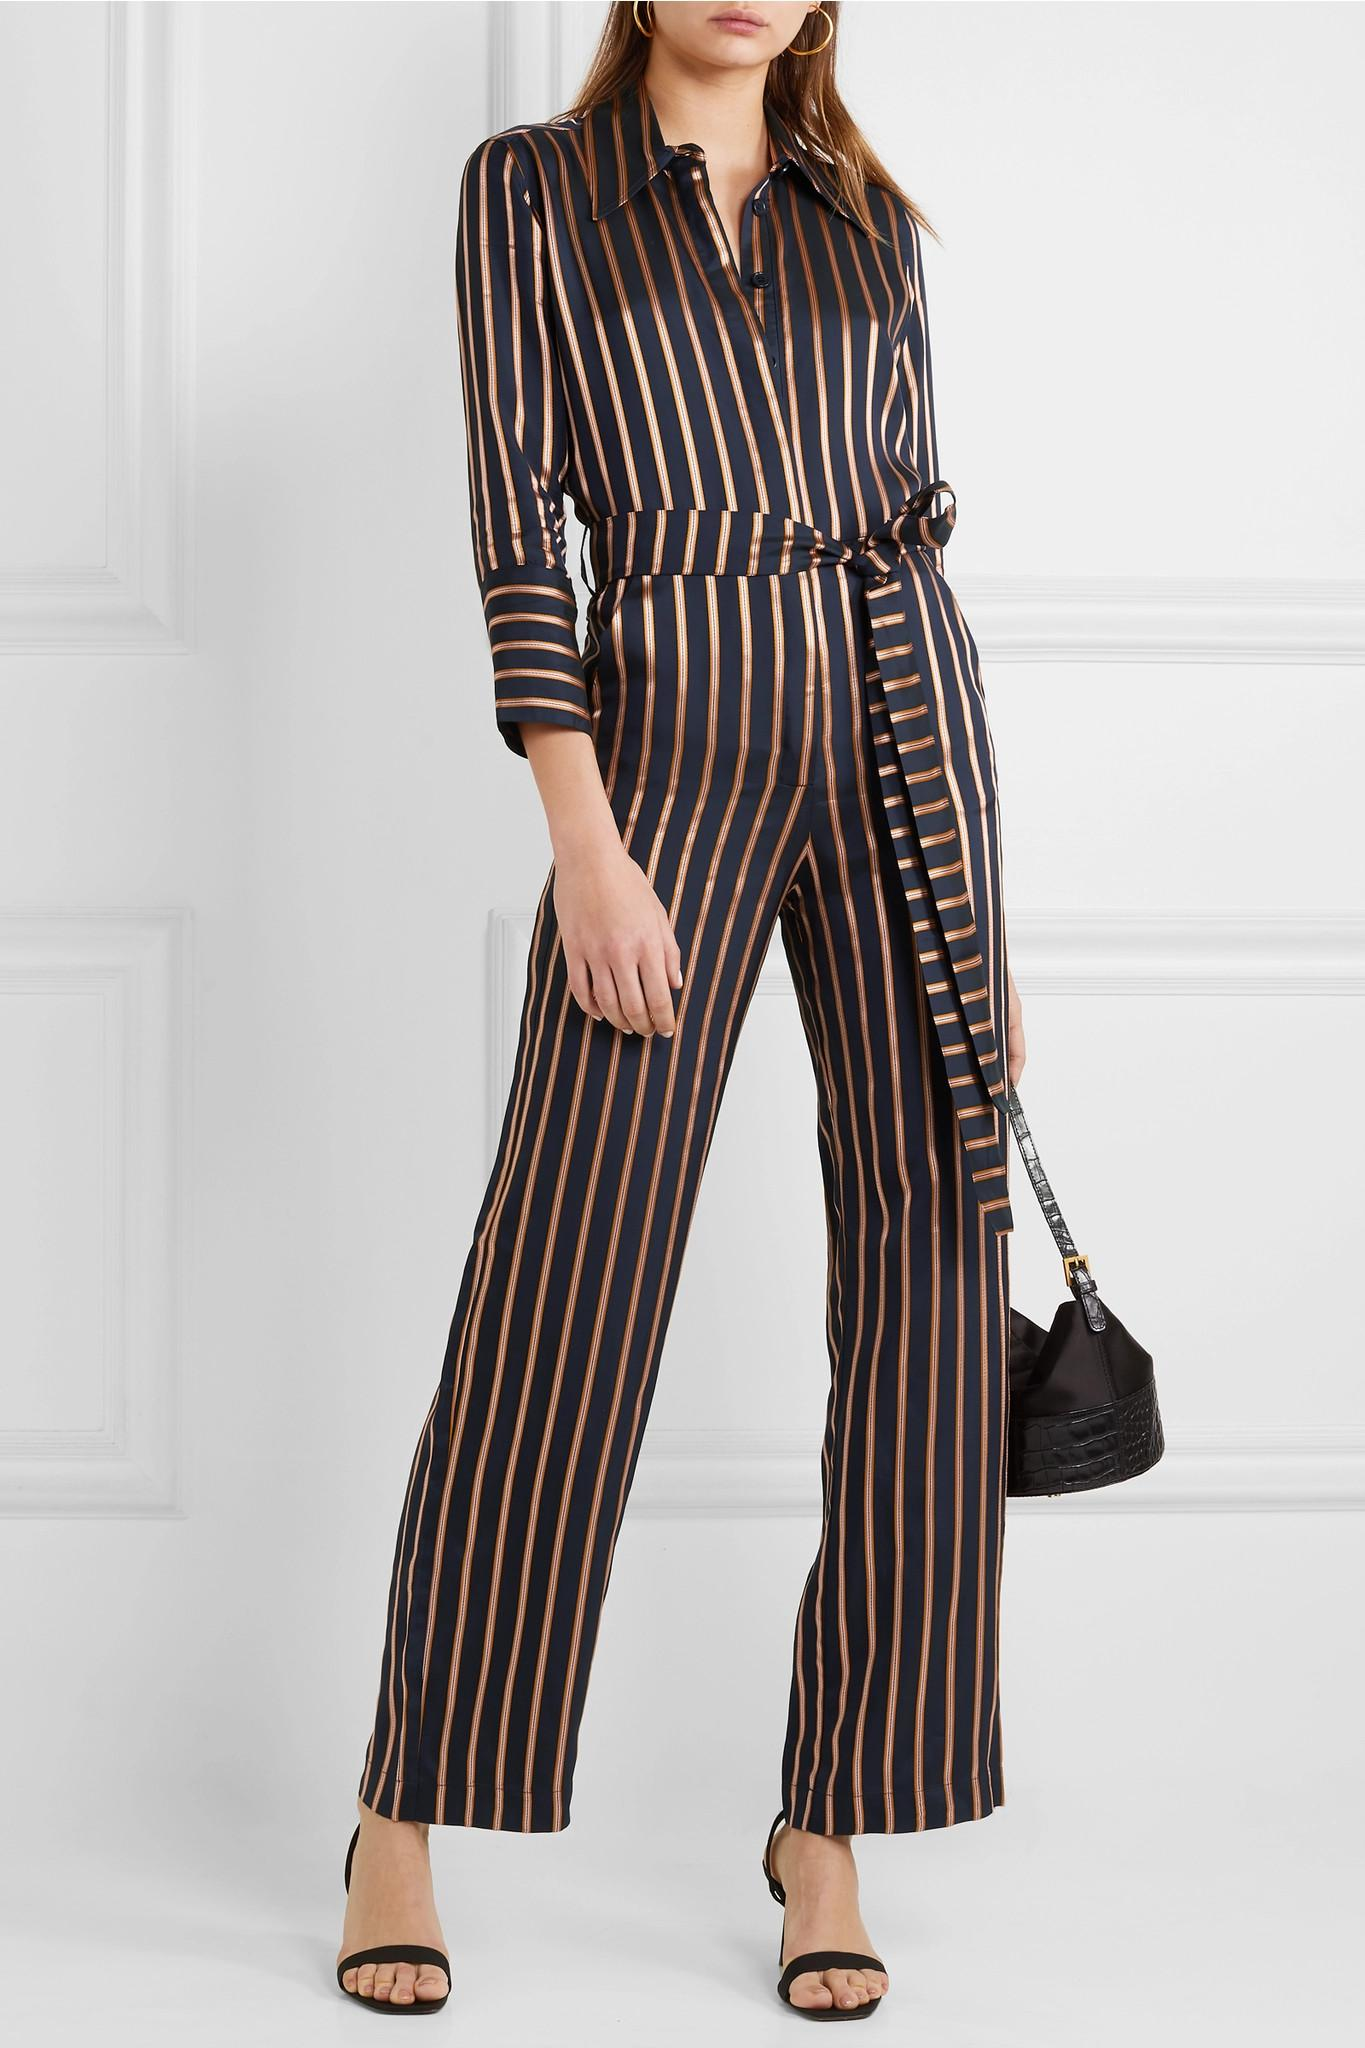 54981e6cc6e Lyst - M.i.h Jeans Dexy Belted Striped Jacquard Jumpsuit in Blue